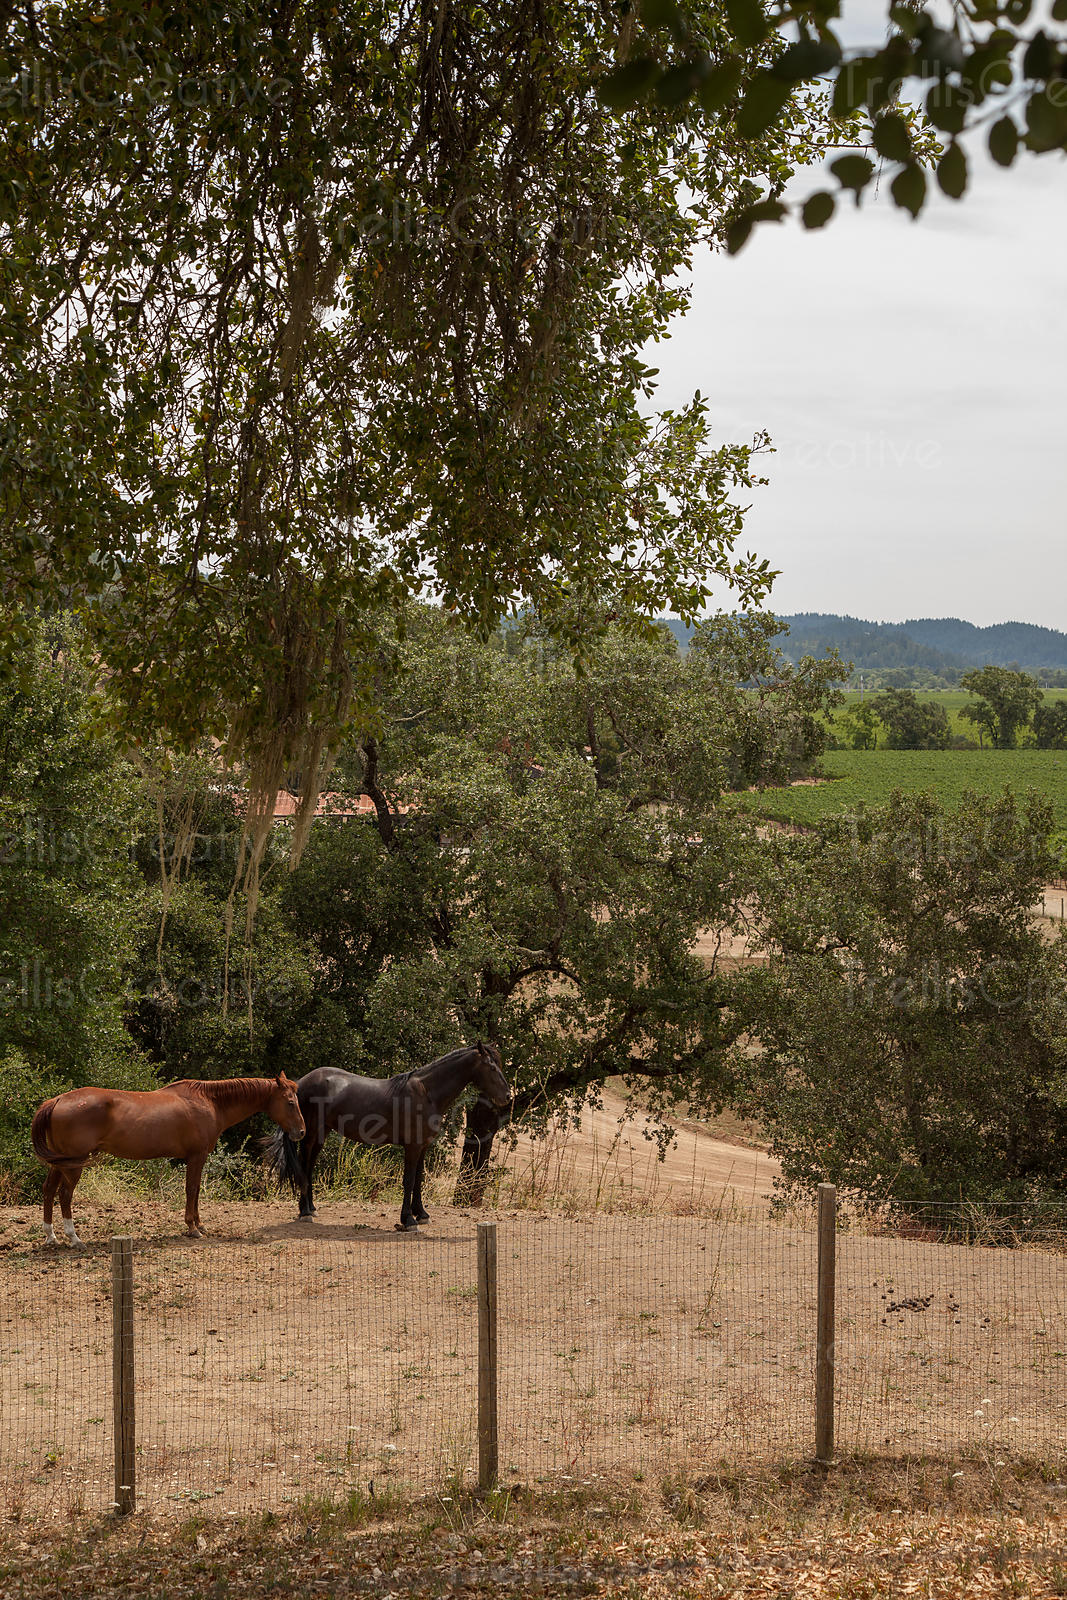 Two horses standing near fence in a vineyard